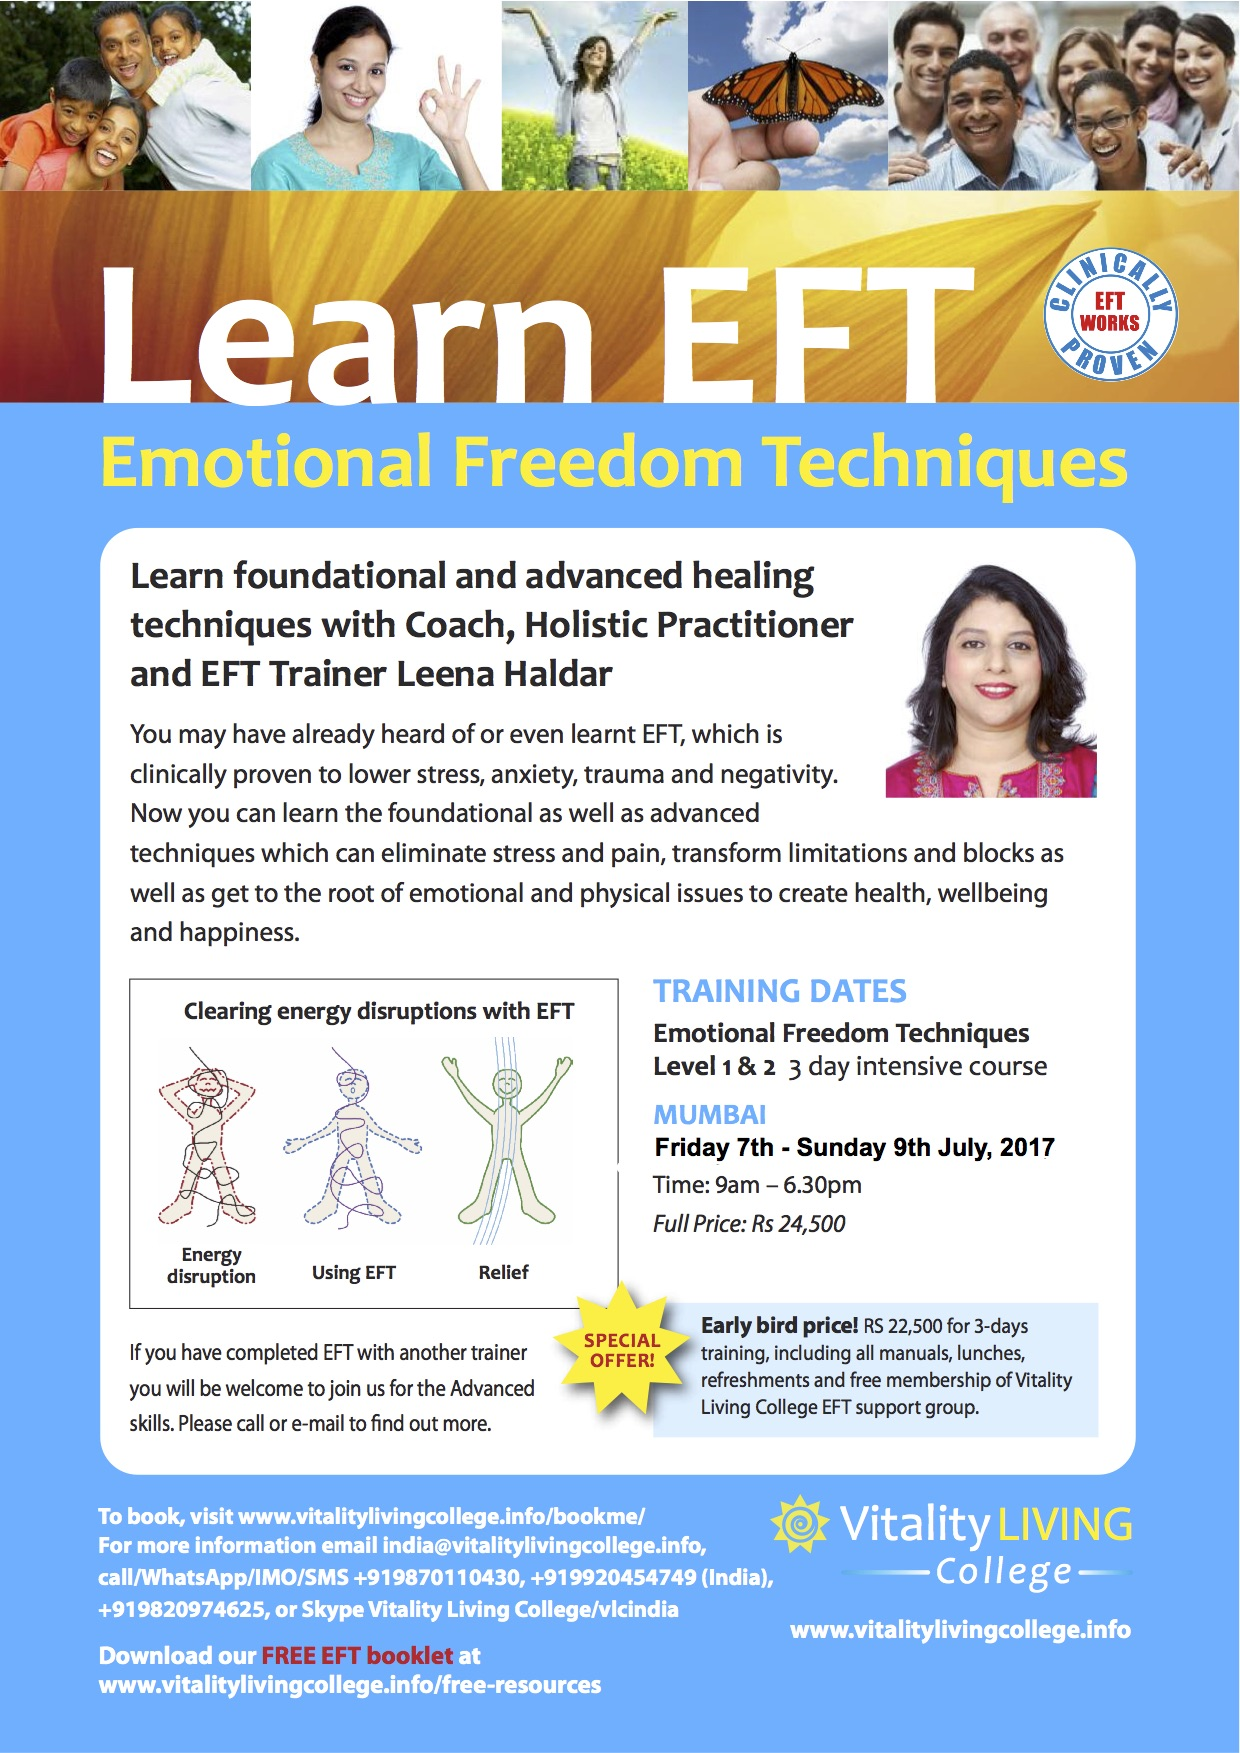 Emotional Freedom Techniques (EFT) Mumbai July 2017